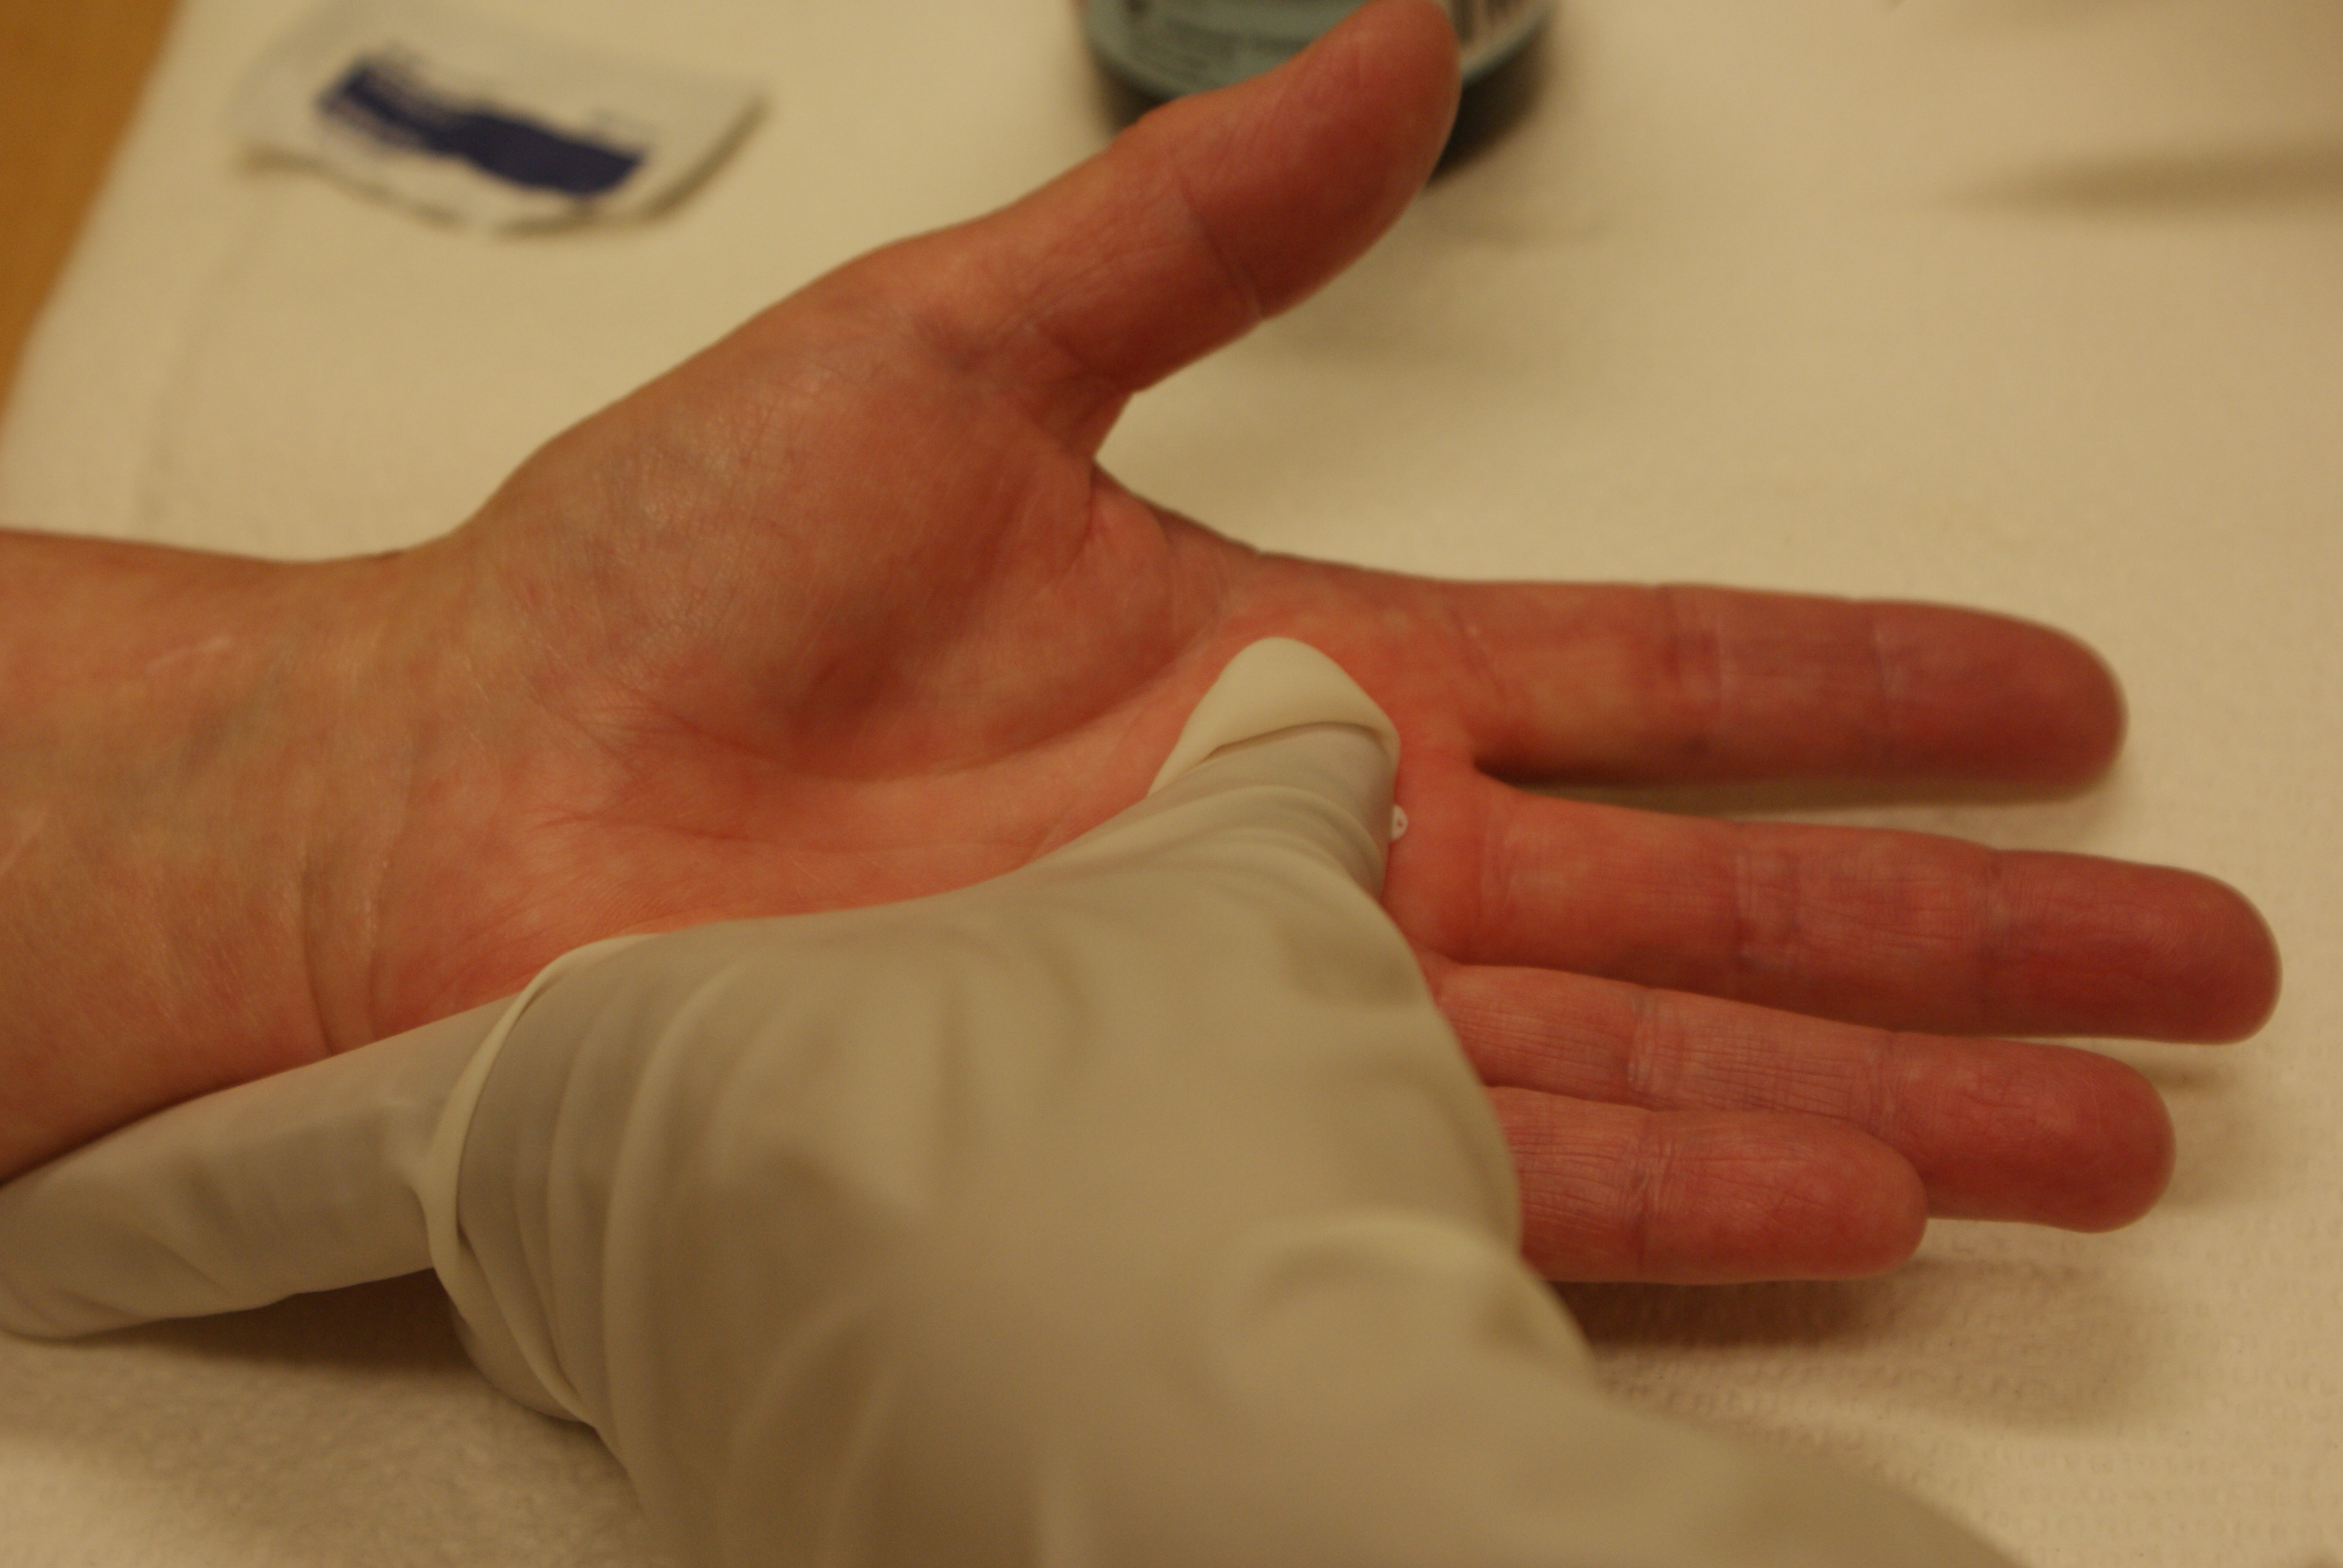 Release affected thumb trigger surg surgeon